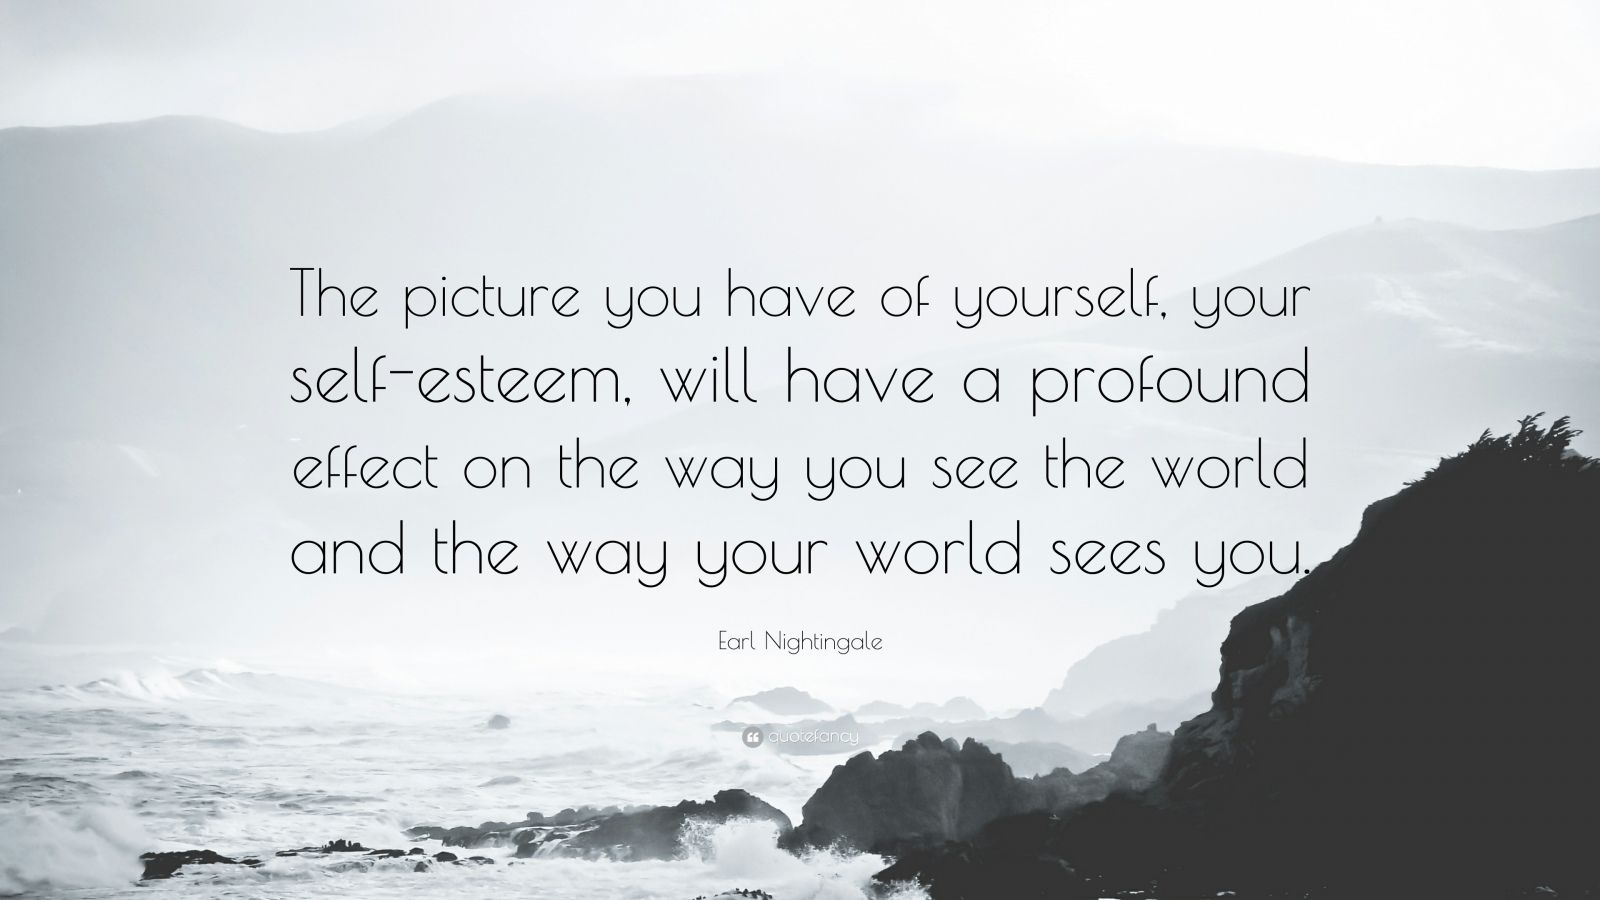 """Earl Nightingale Quote: """"The picture you have of yourself, your self-esteem, will have a profound effect on the way you see the world and the way your world sees you."""""""